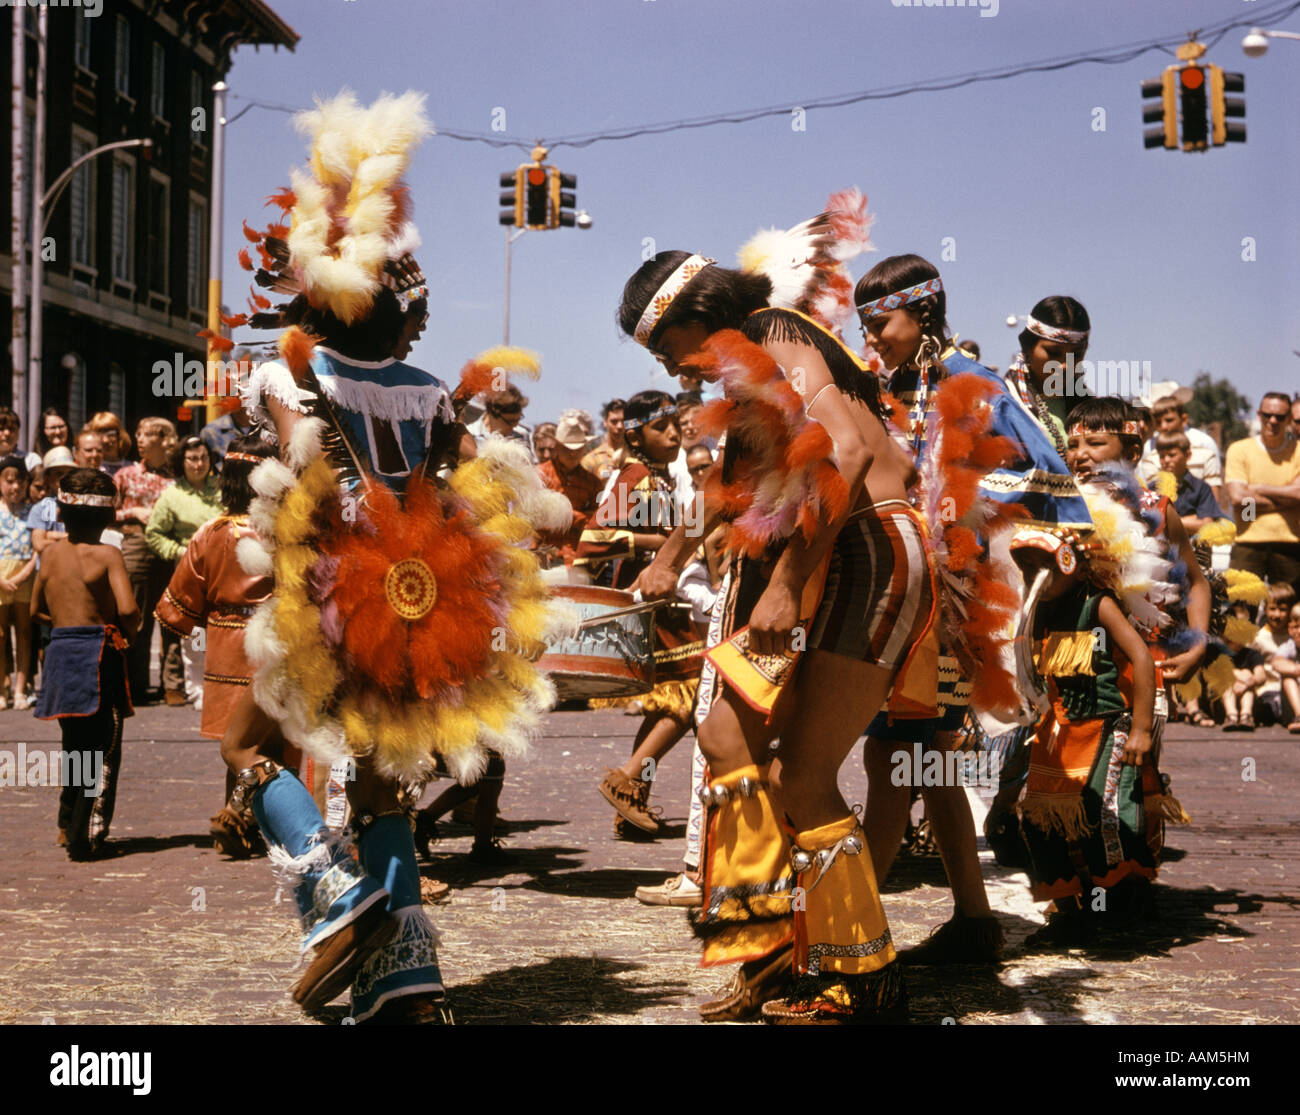 1970 RETRO SIOUX DANZA tribal Indígena Nativo Americano North Platte Nebraska Imagen De Stock